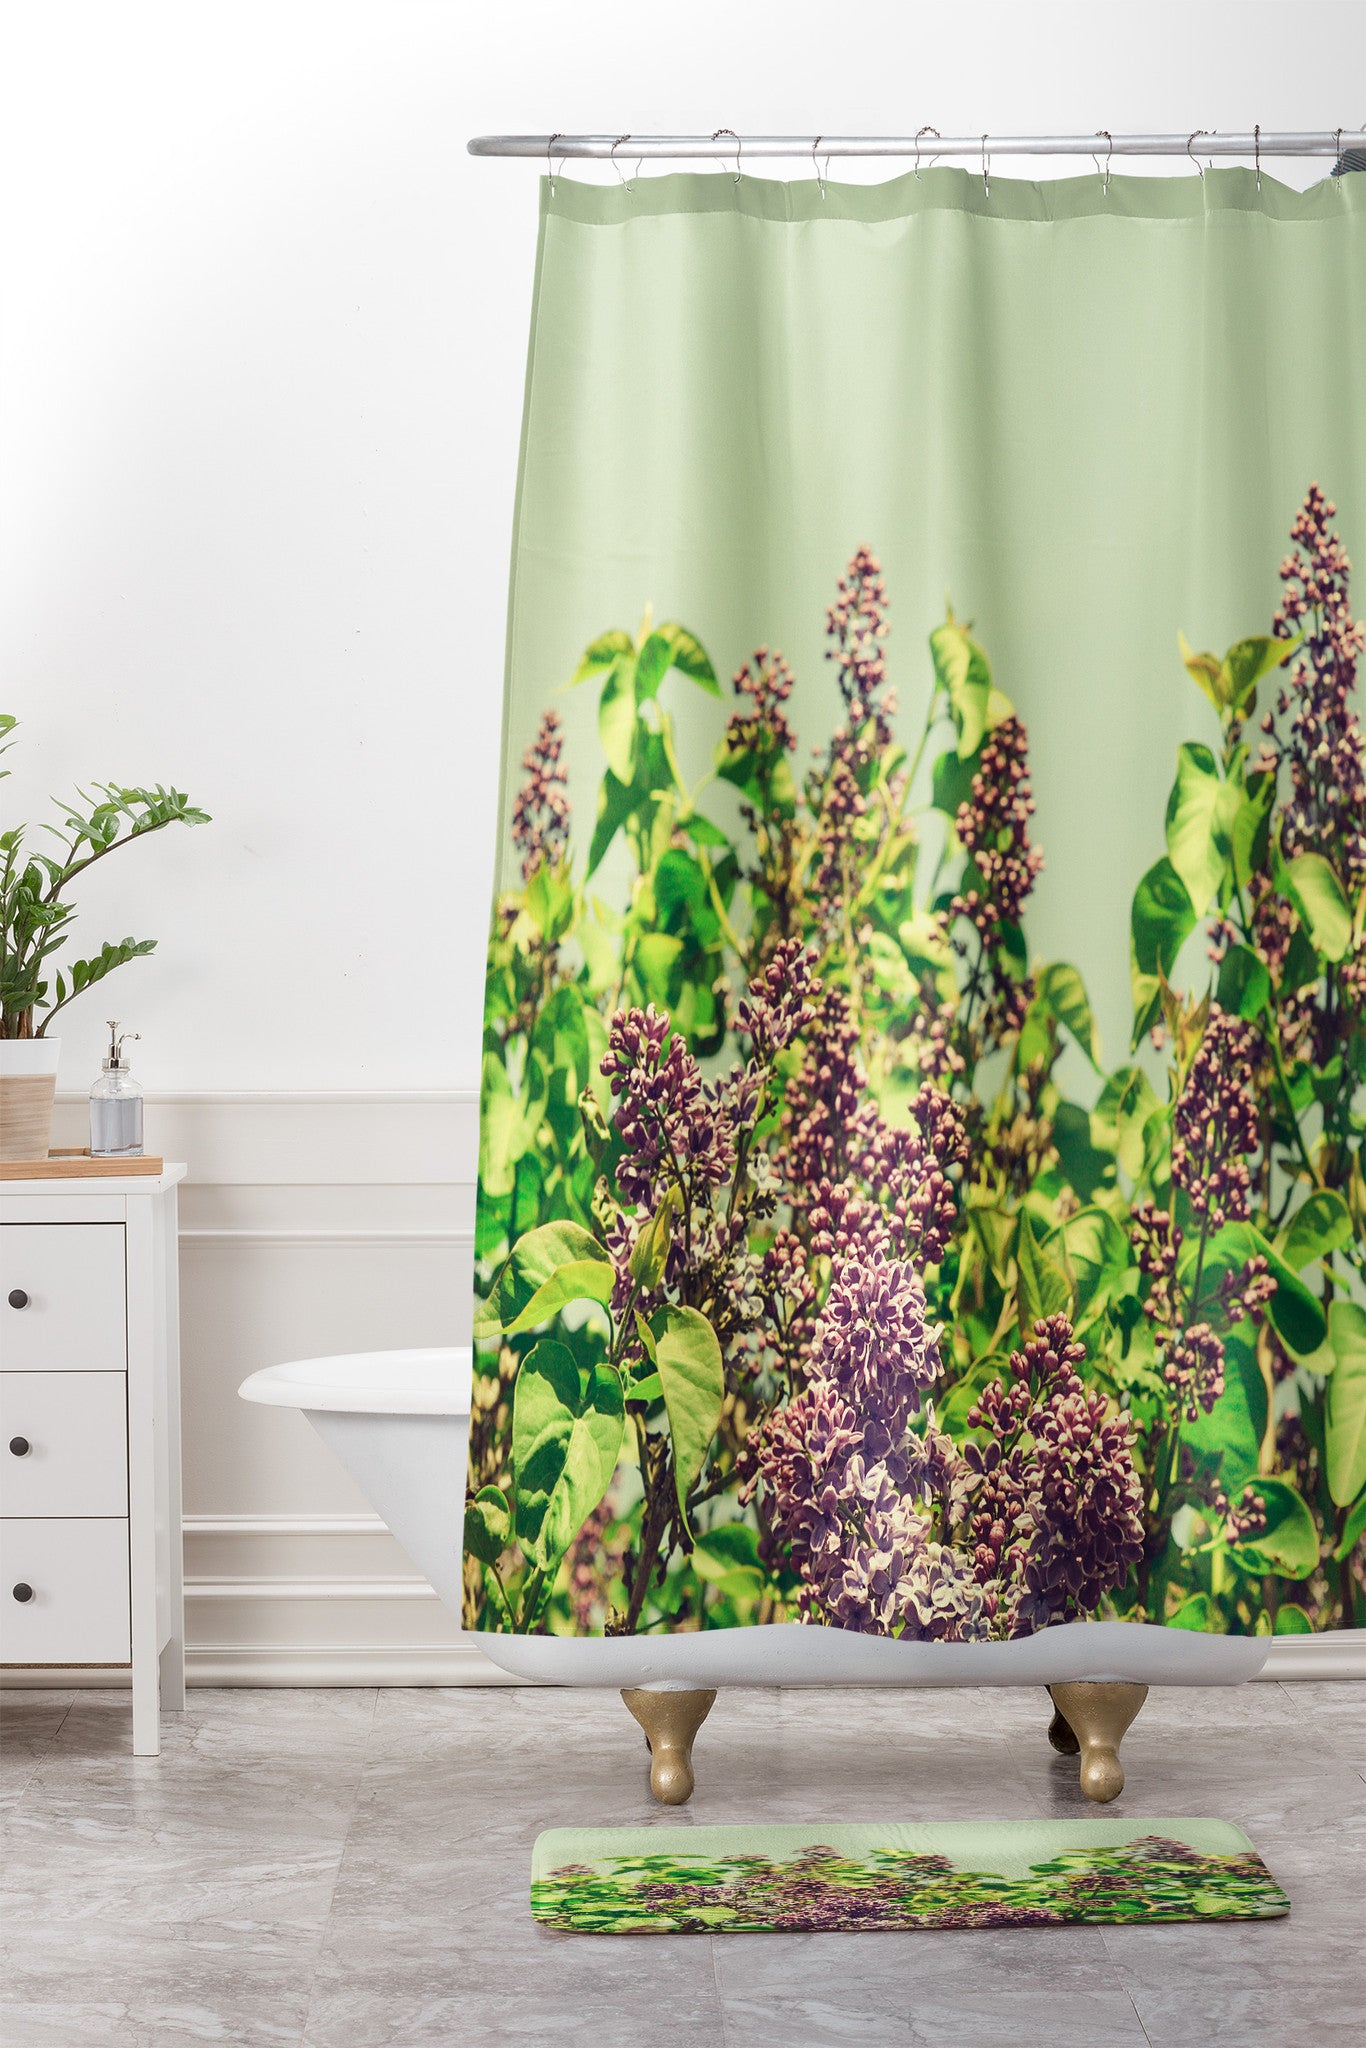 lace burgundy with of curtain bathroom vintage shower inspirations ony images valancevintage salevintage full rugsr for bathroomvintage size owl pole the fearsome womenvintage curtains